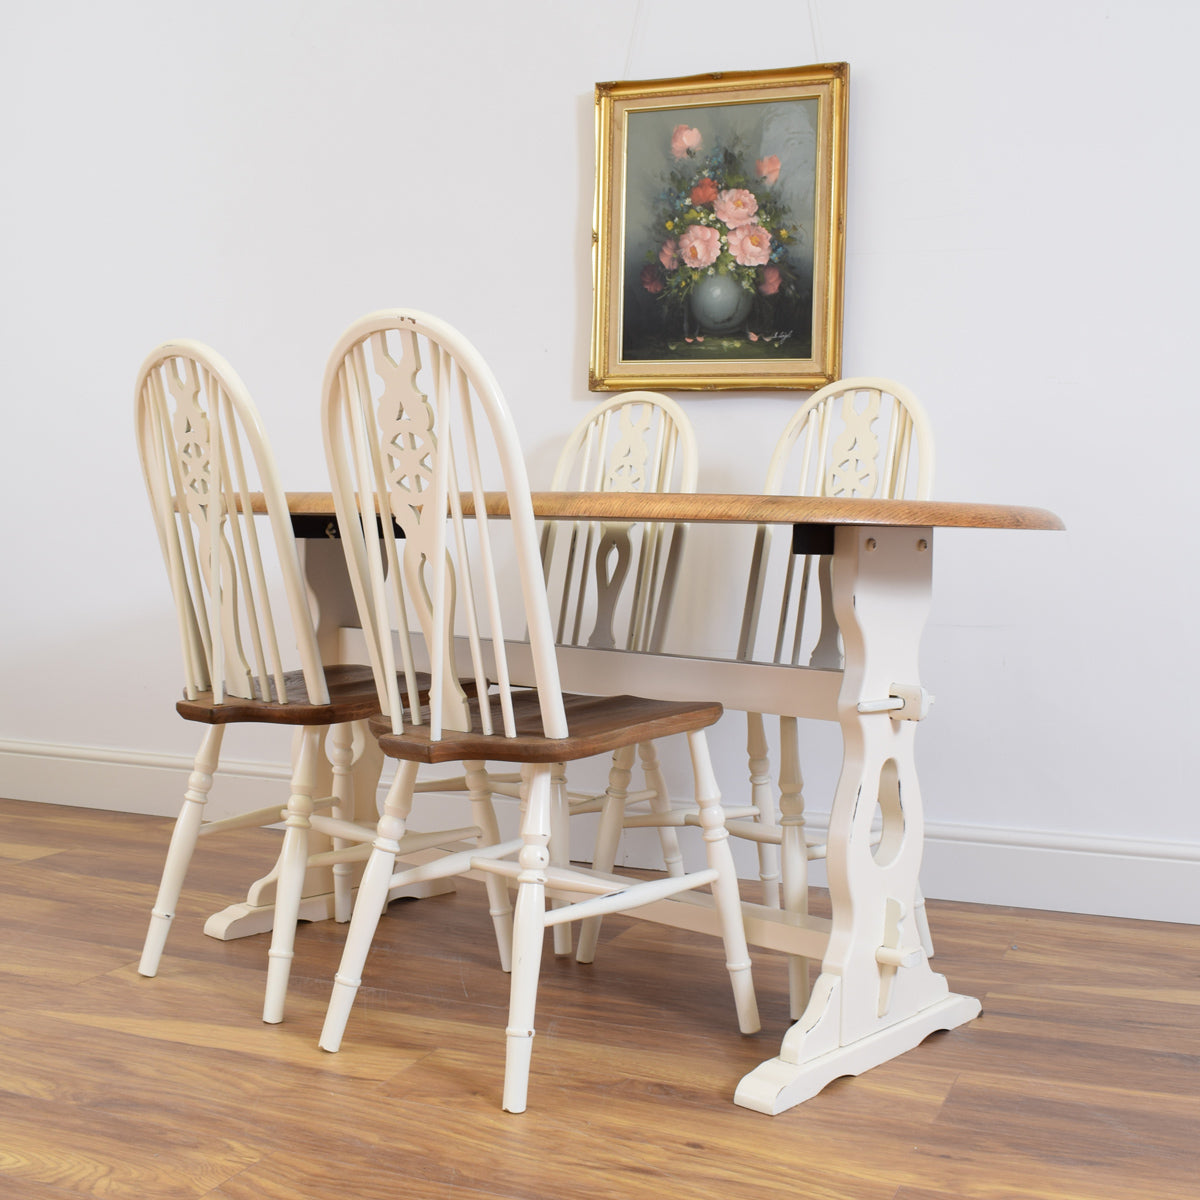 Painted Ercol Table and Four Chairs